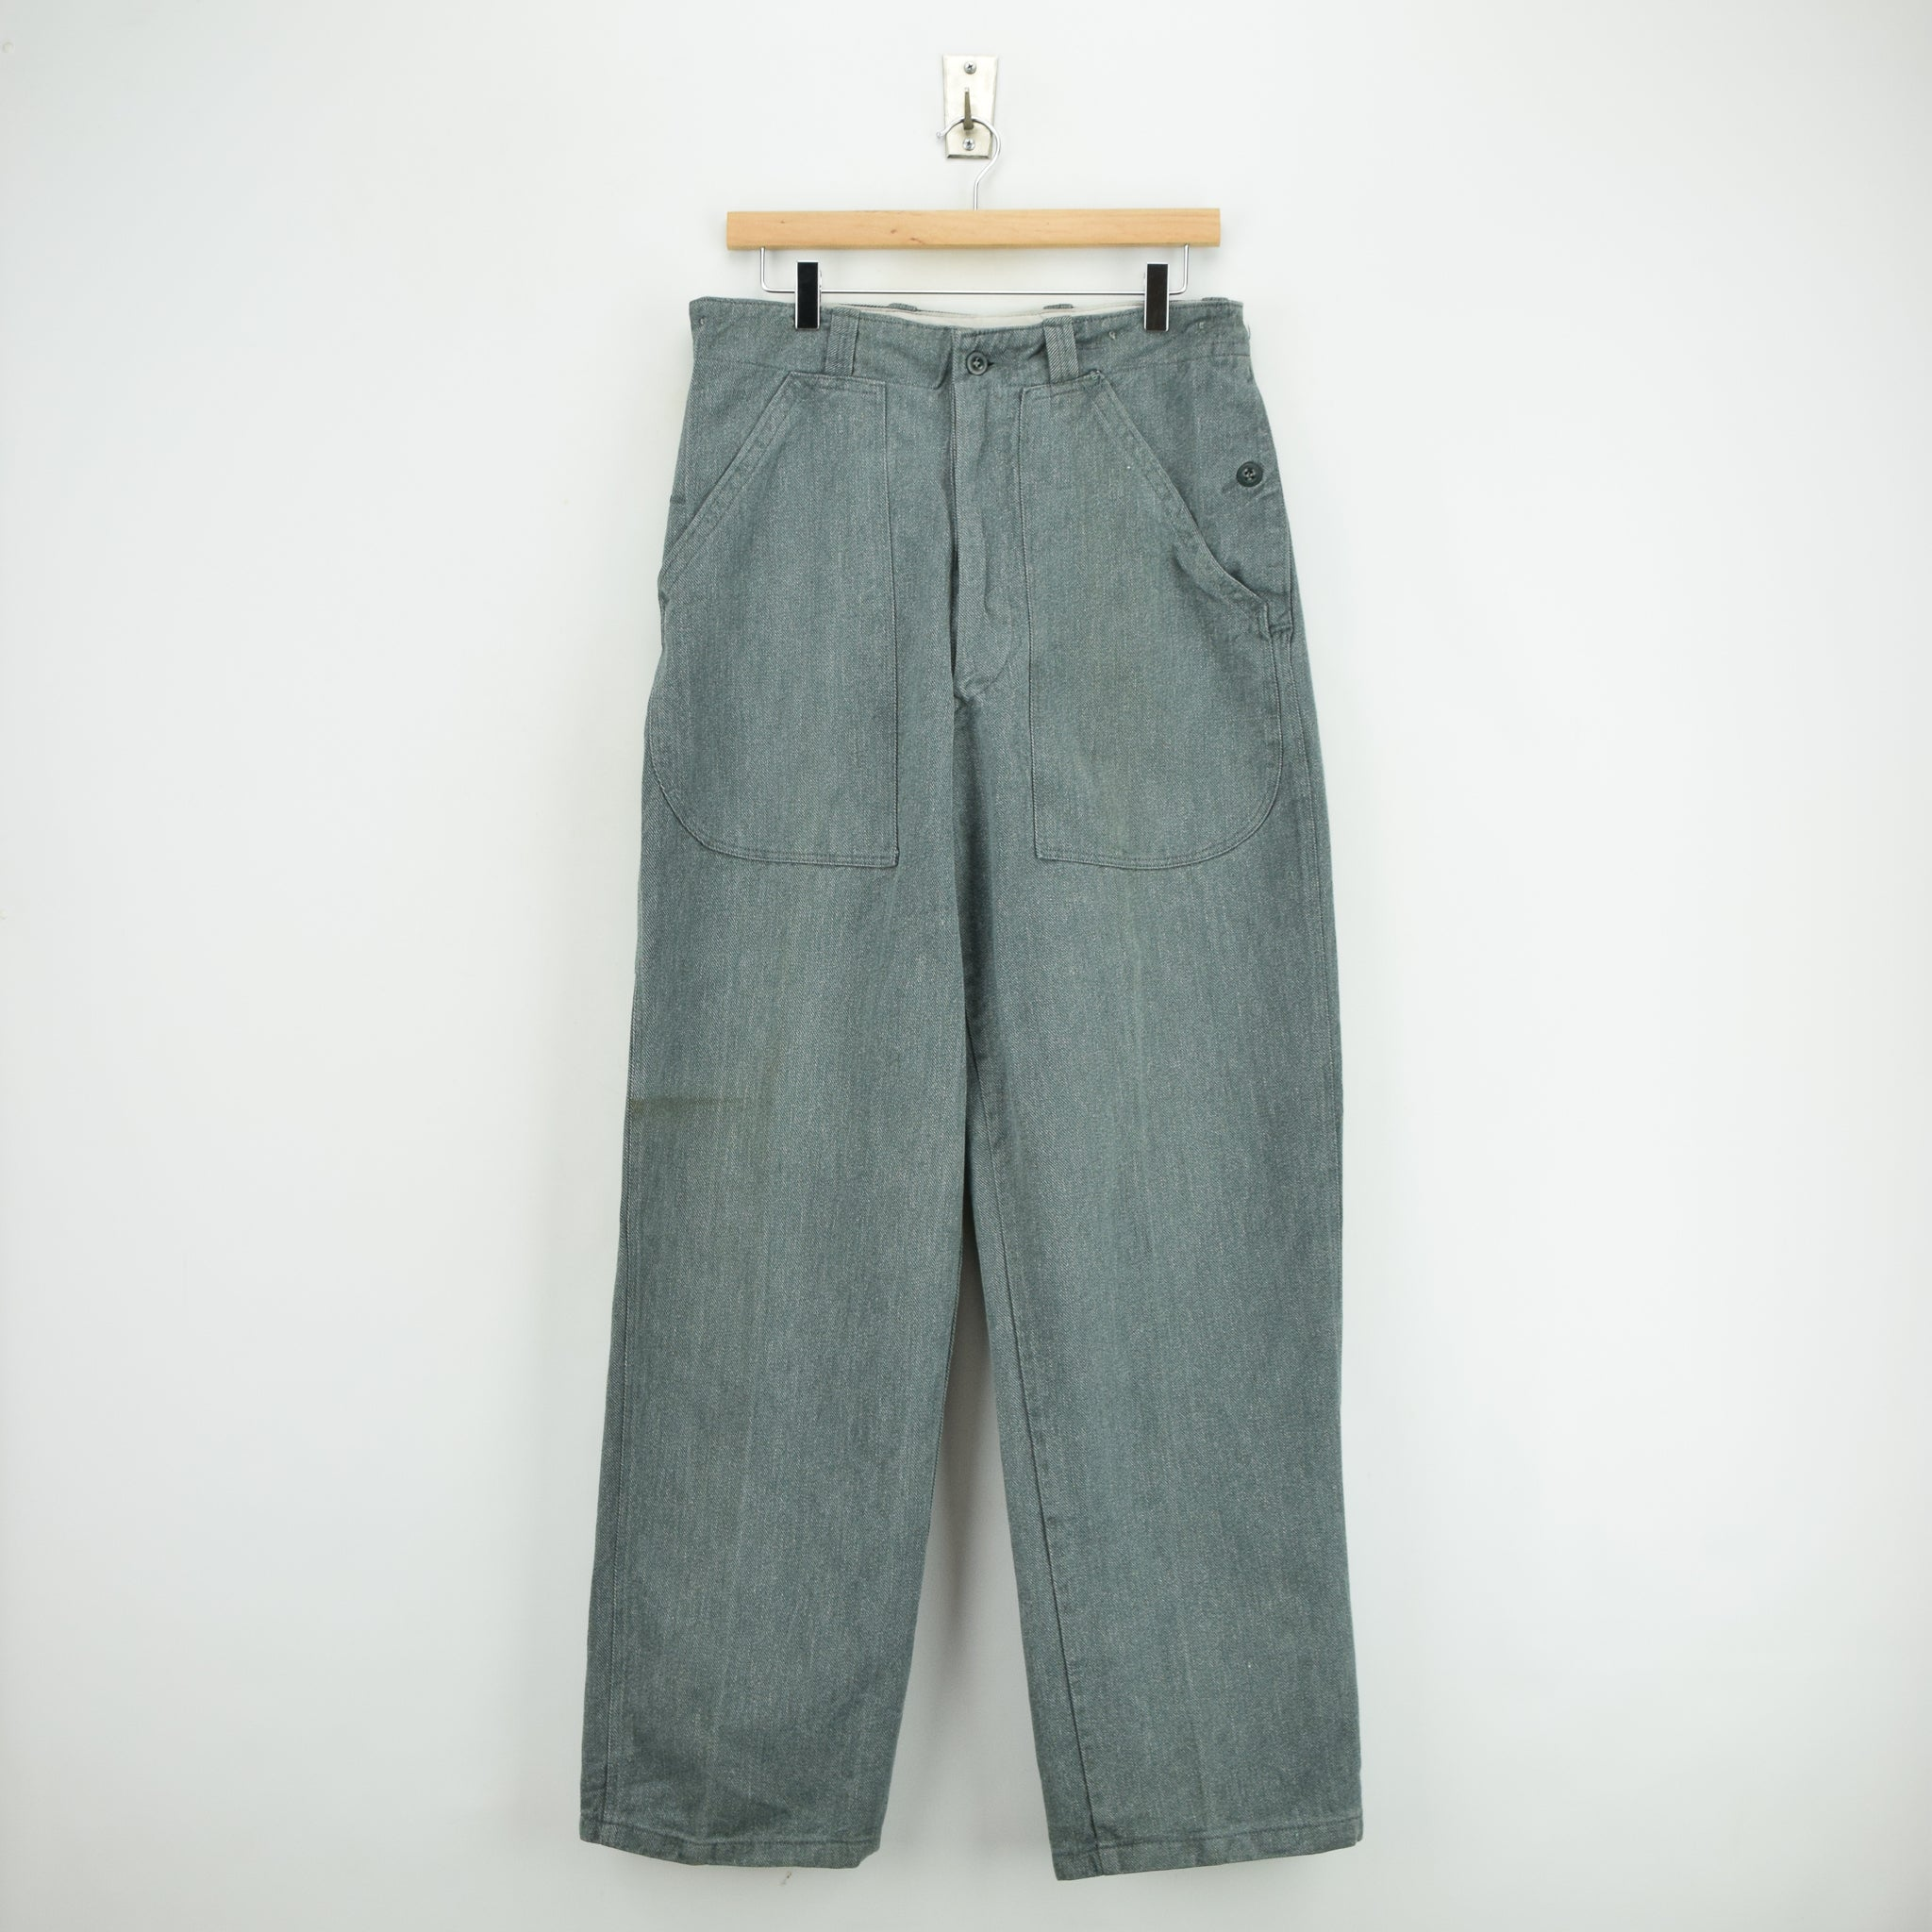 2a3e2a4e Vintage 40s WWII Style Swiss Army Salt & Pepper Worker Chore Trousers 30 W  front ...